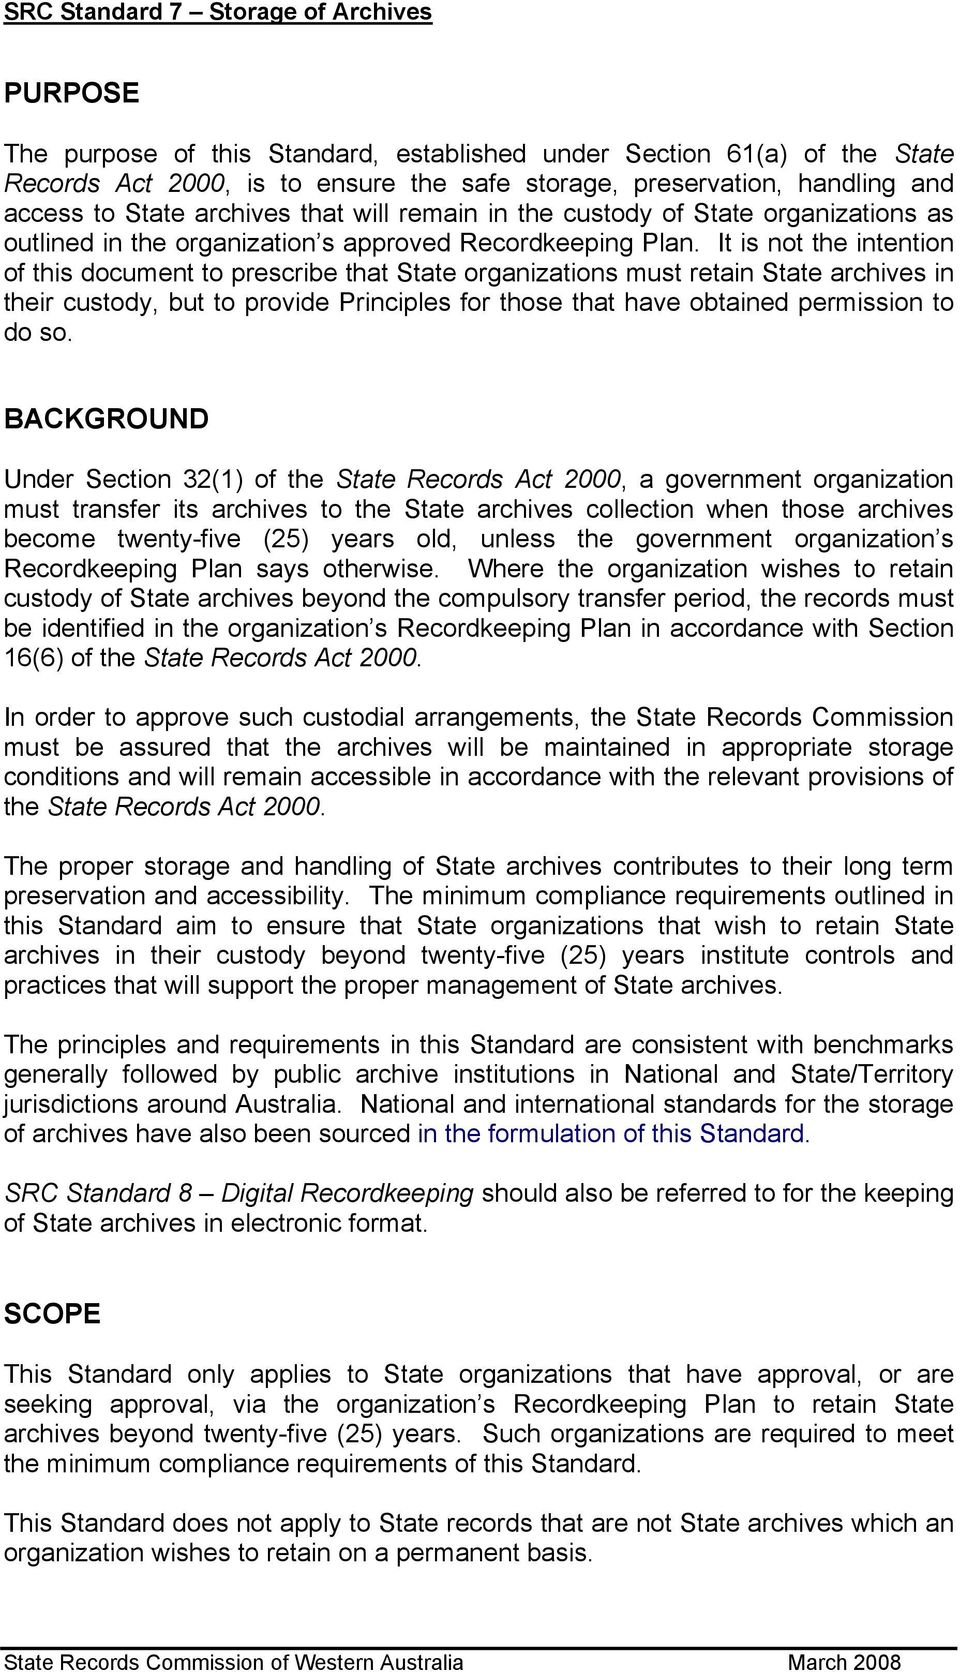 It is not the intention of this document to prescribe that State organizations must retain State archives in their custody, but to provide Principles for those that have obtained permission to do so.